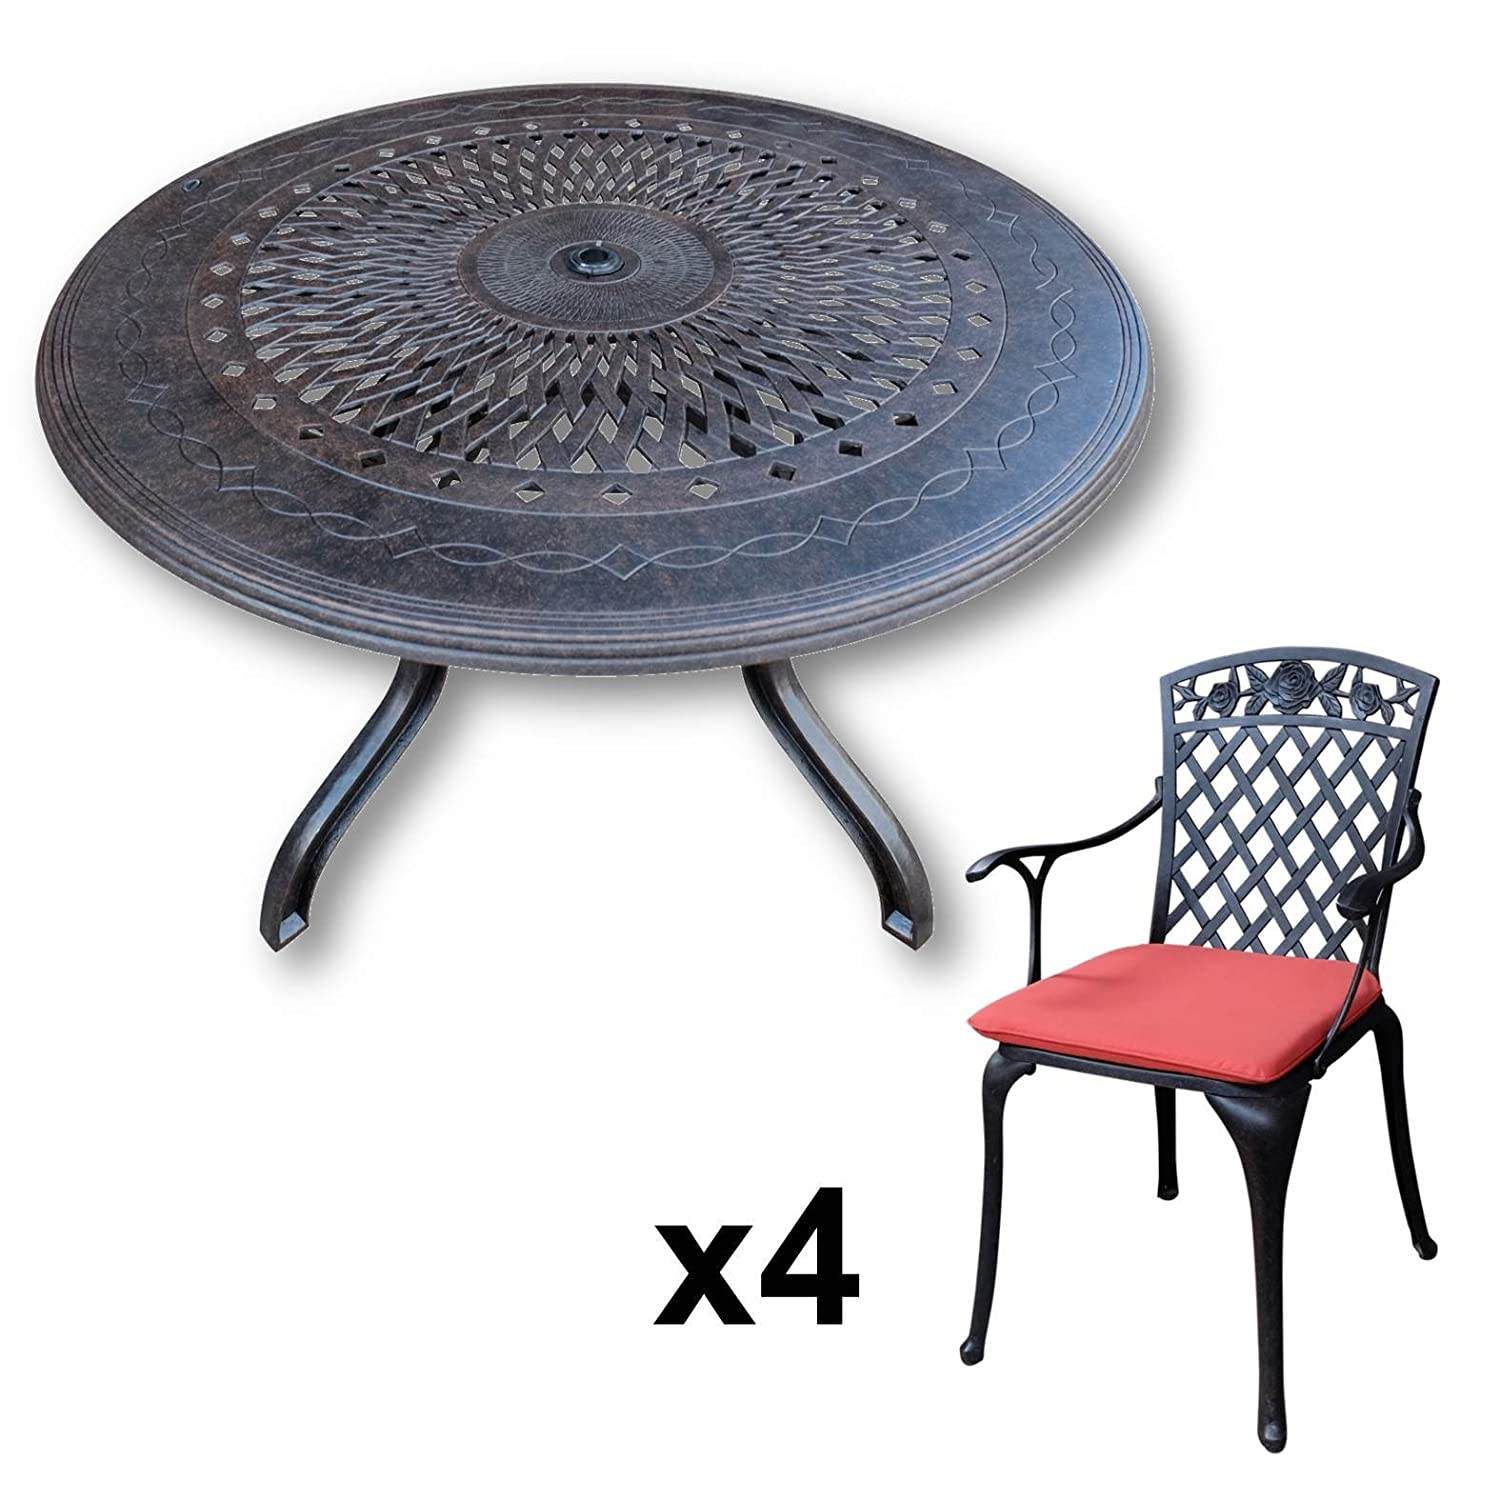 lazy susan amy 120 cm runder gartentisch mit 4 st hlen gartenm bel set aus metall antik. Black Bedroom Furniture Sets. Home Design Ideas